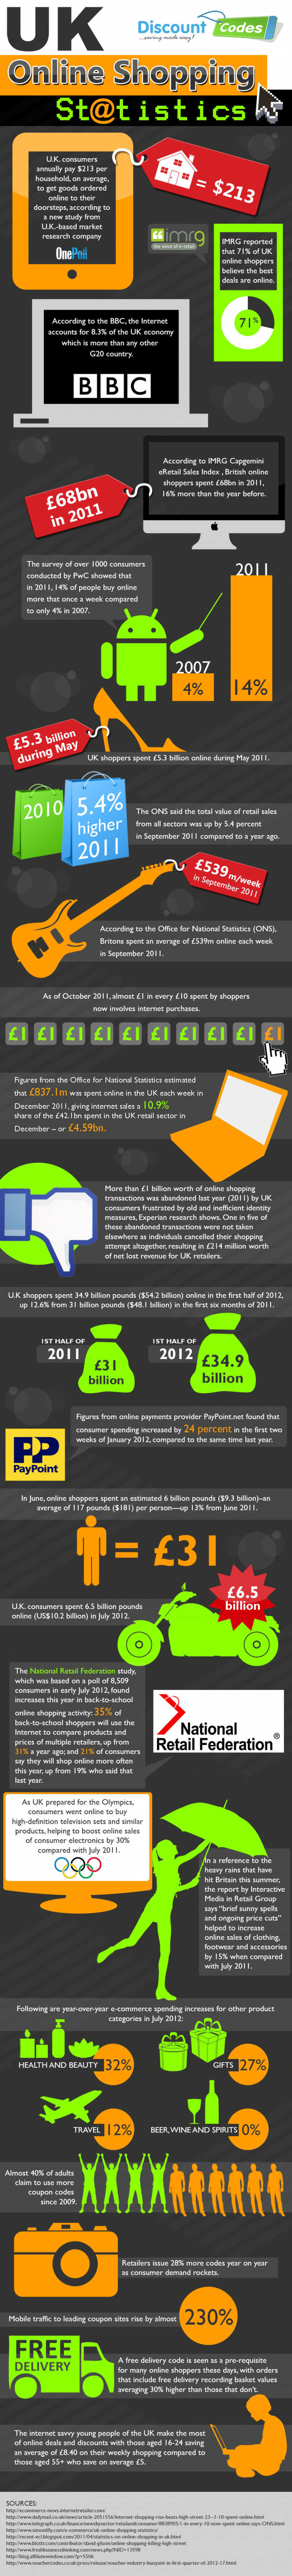 UK Online Spending Habbits Infographic